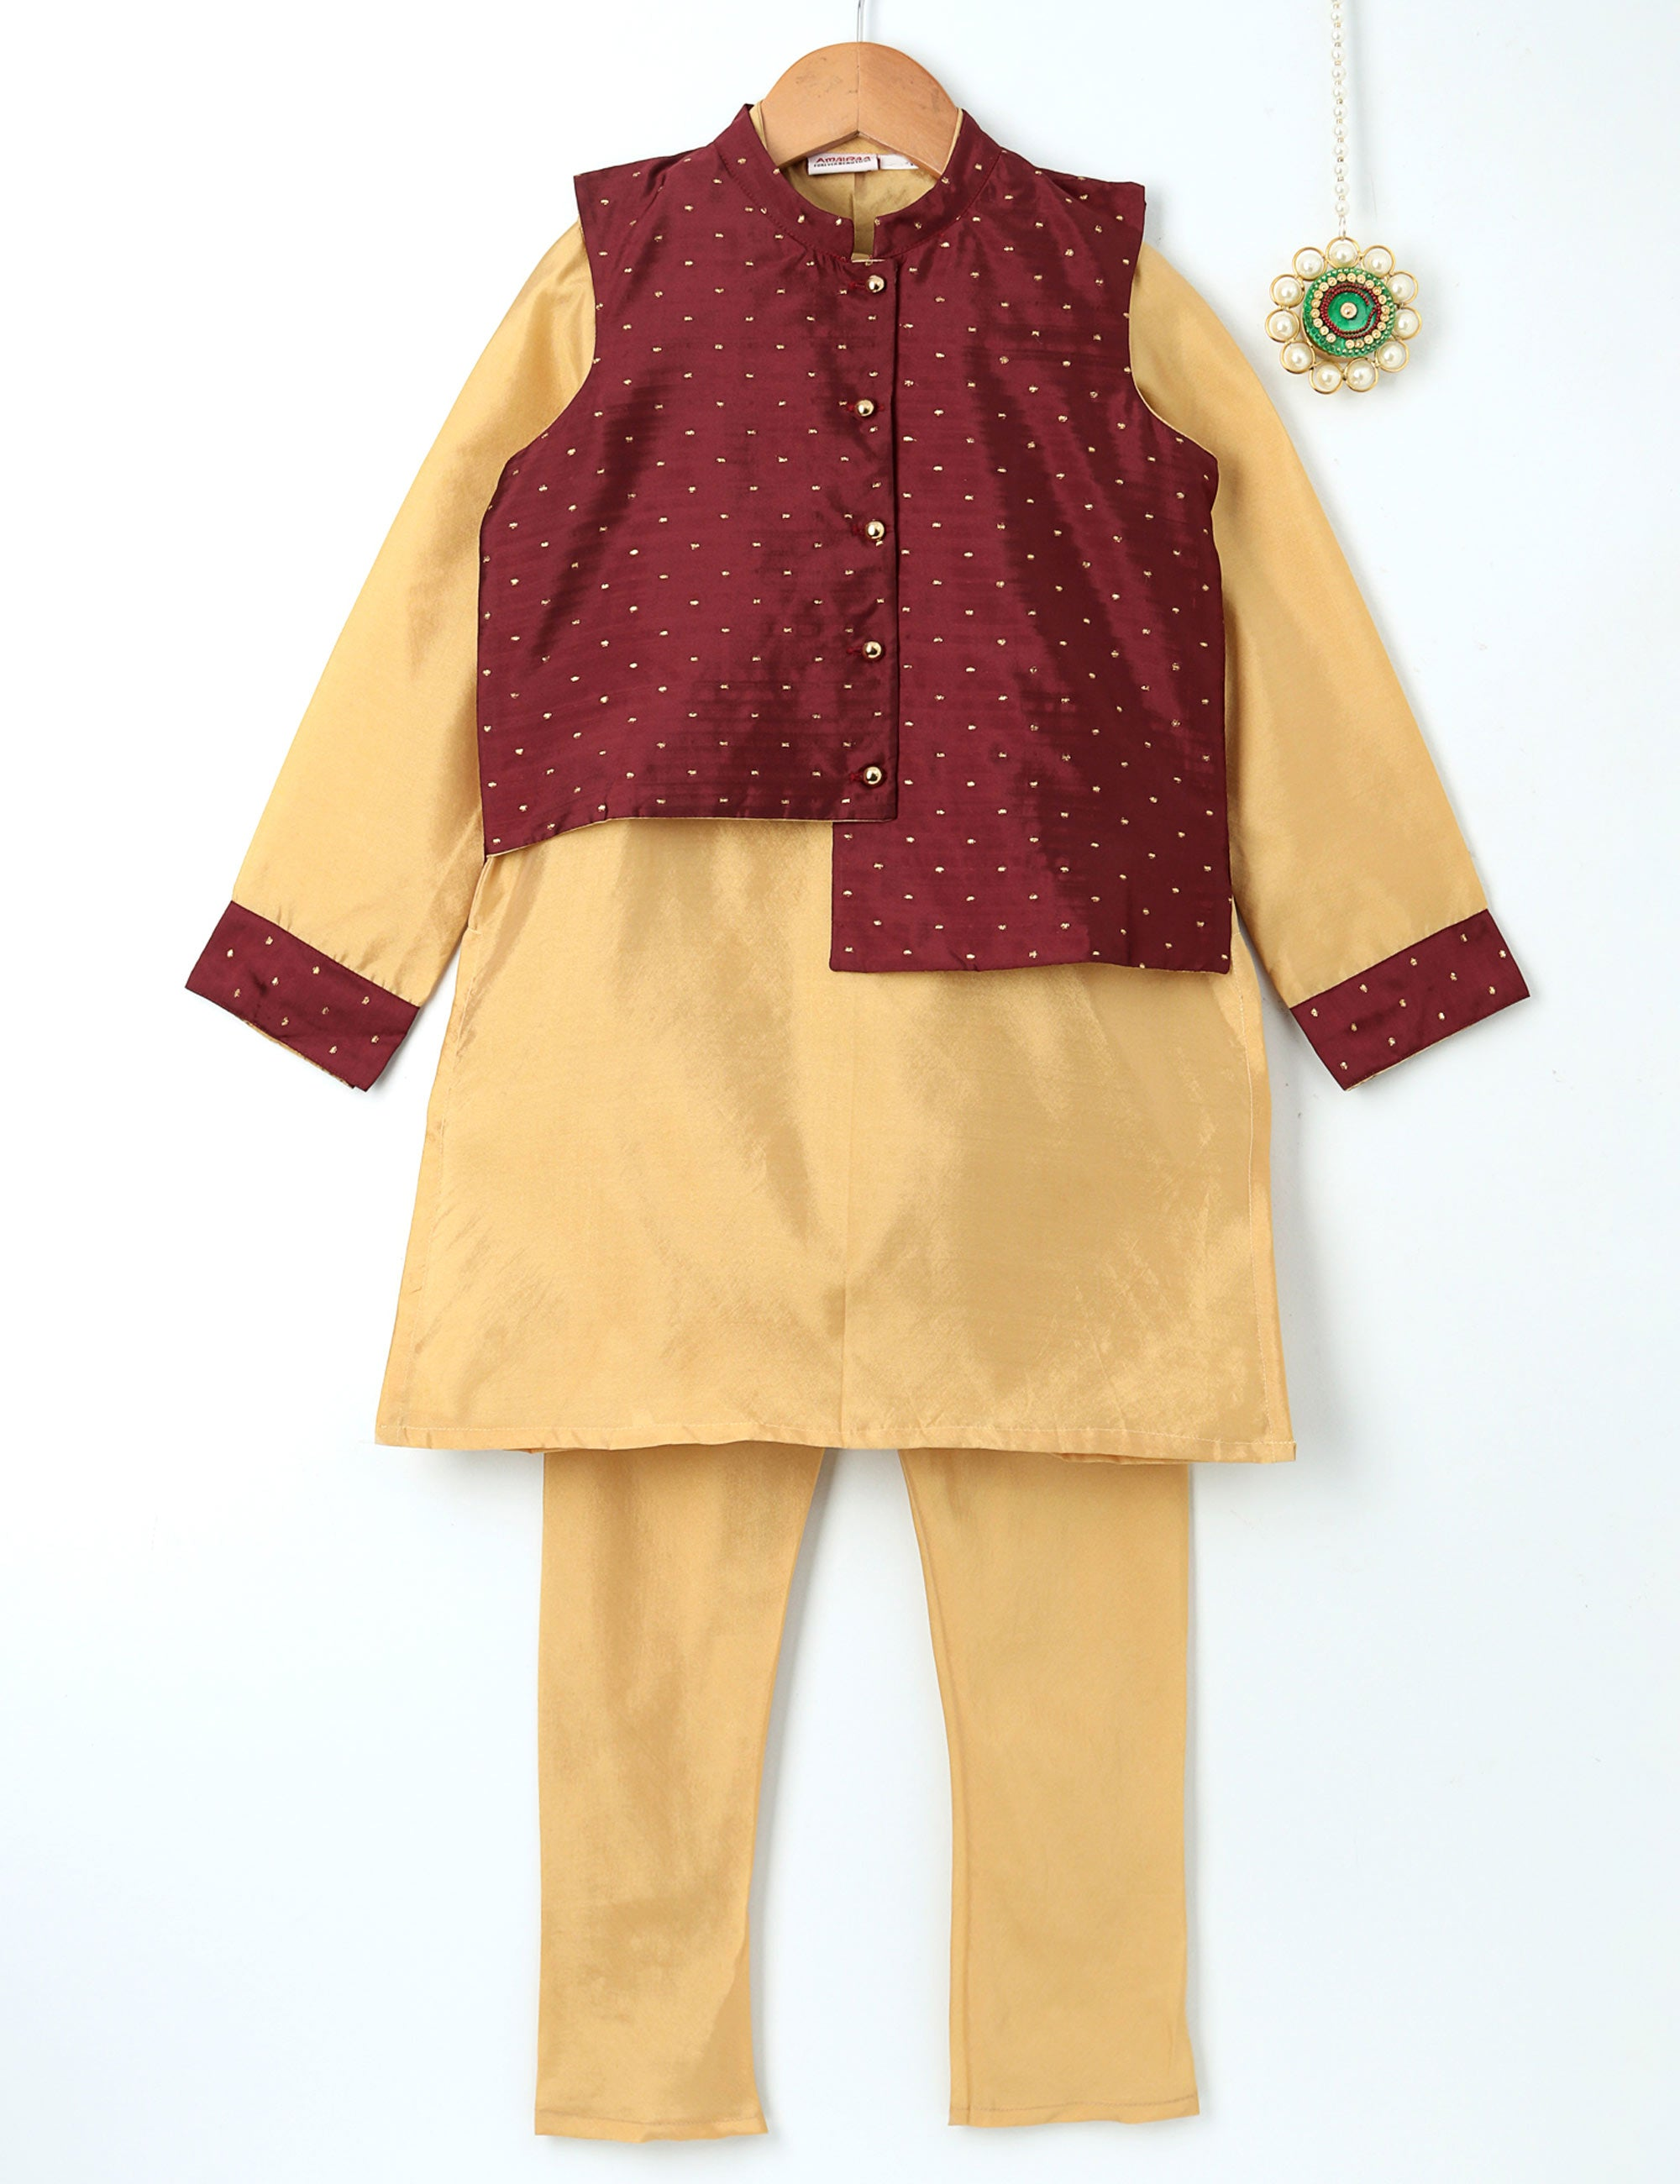 Kurta Pyjama and Jacket in Beige Colour